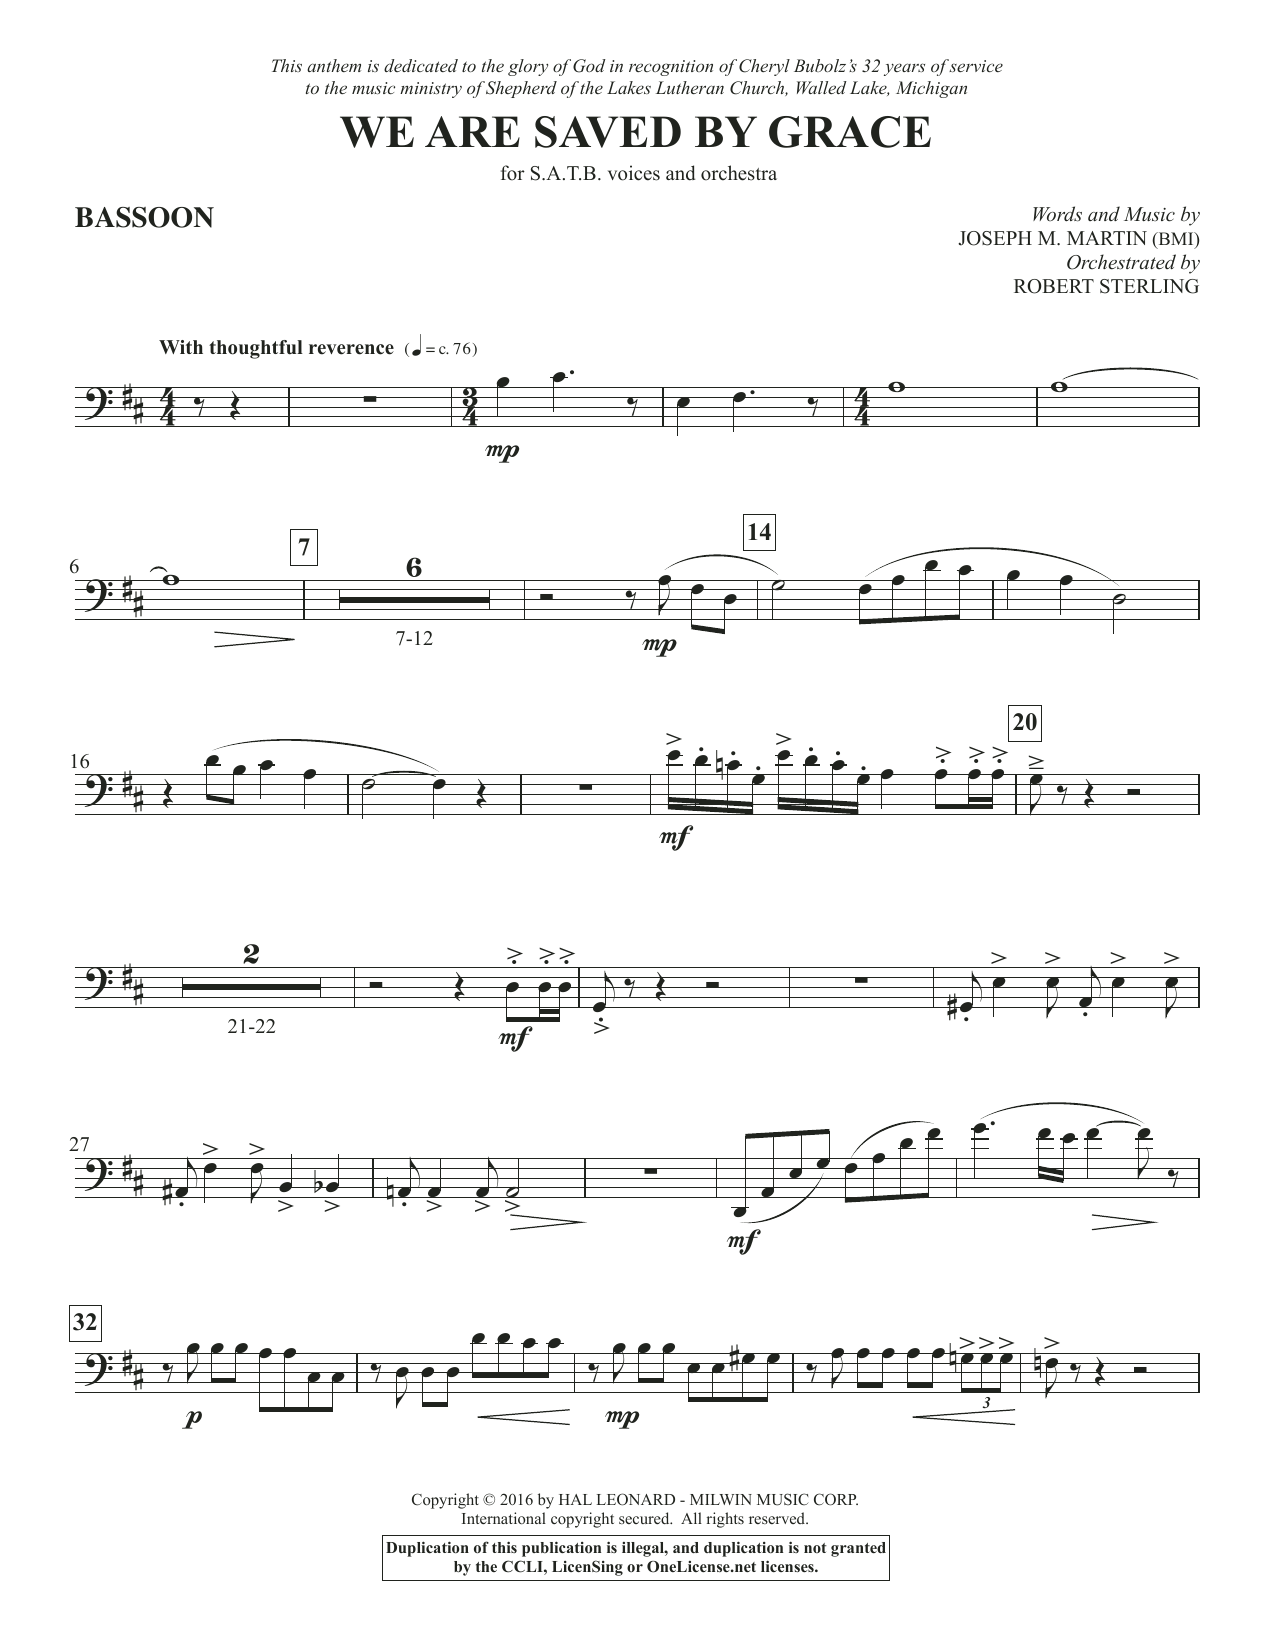 We Are Saved by Grace - Bassoon Sheet Music